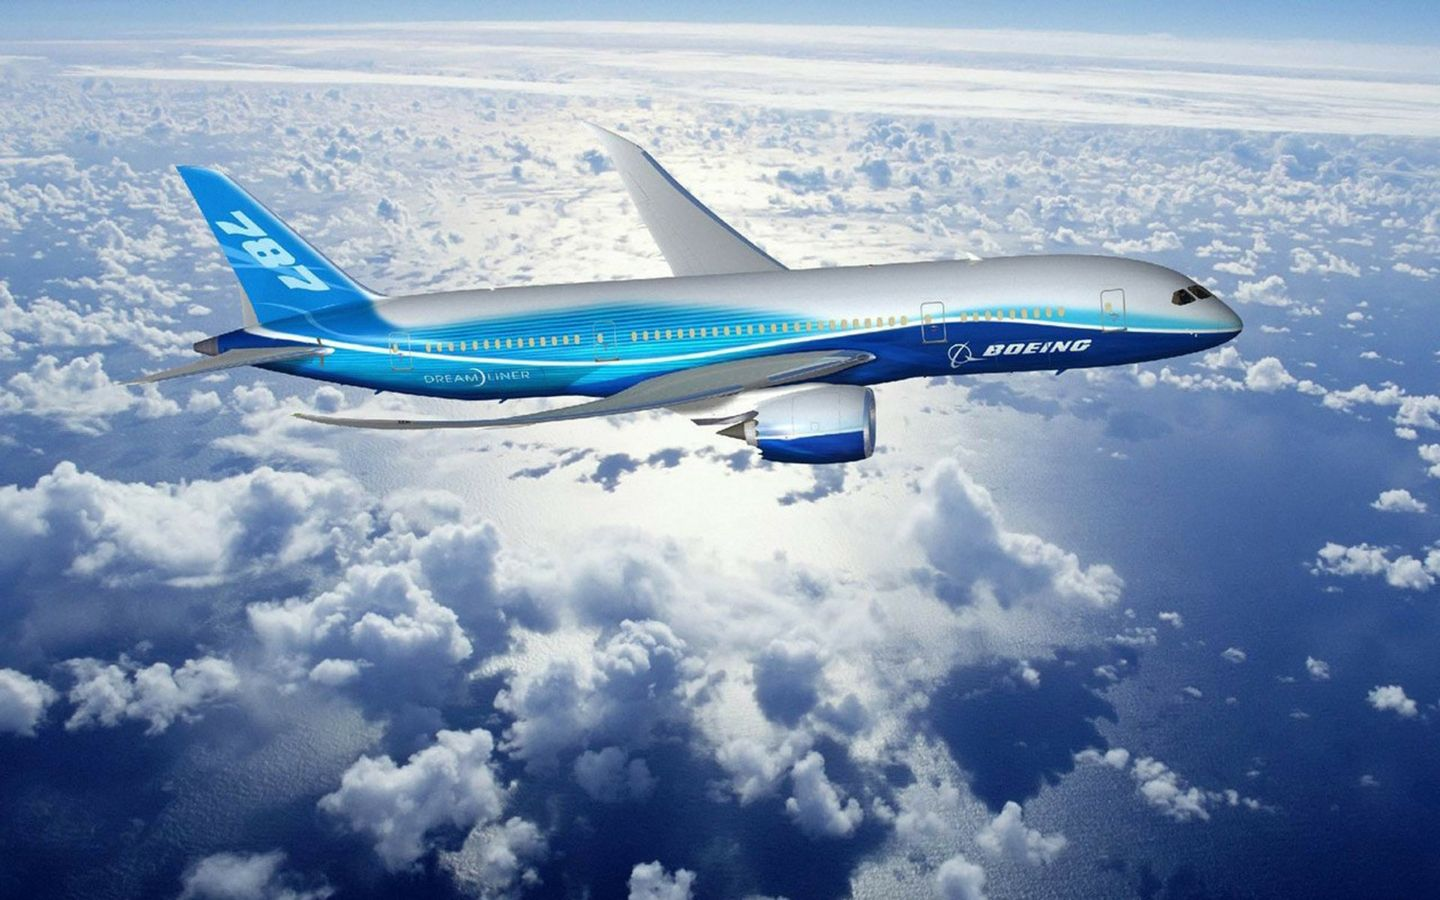 Boeing 787 Dreamliner Wallpaper China southern airlines